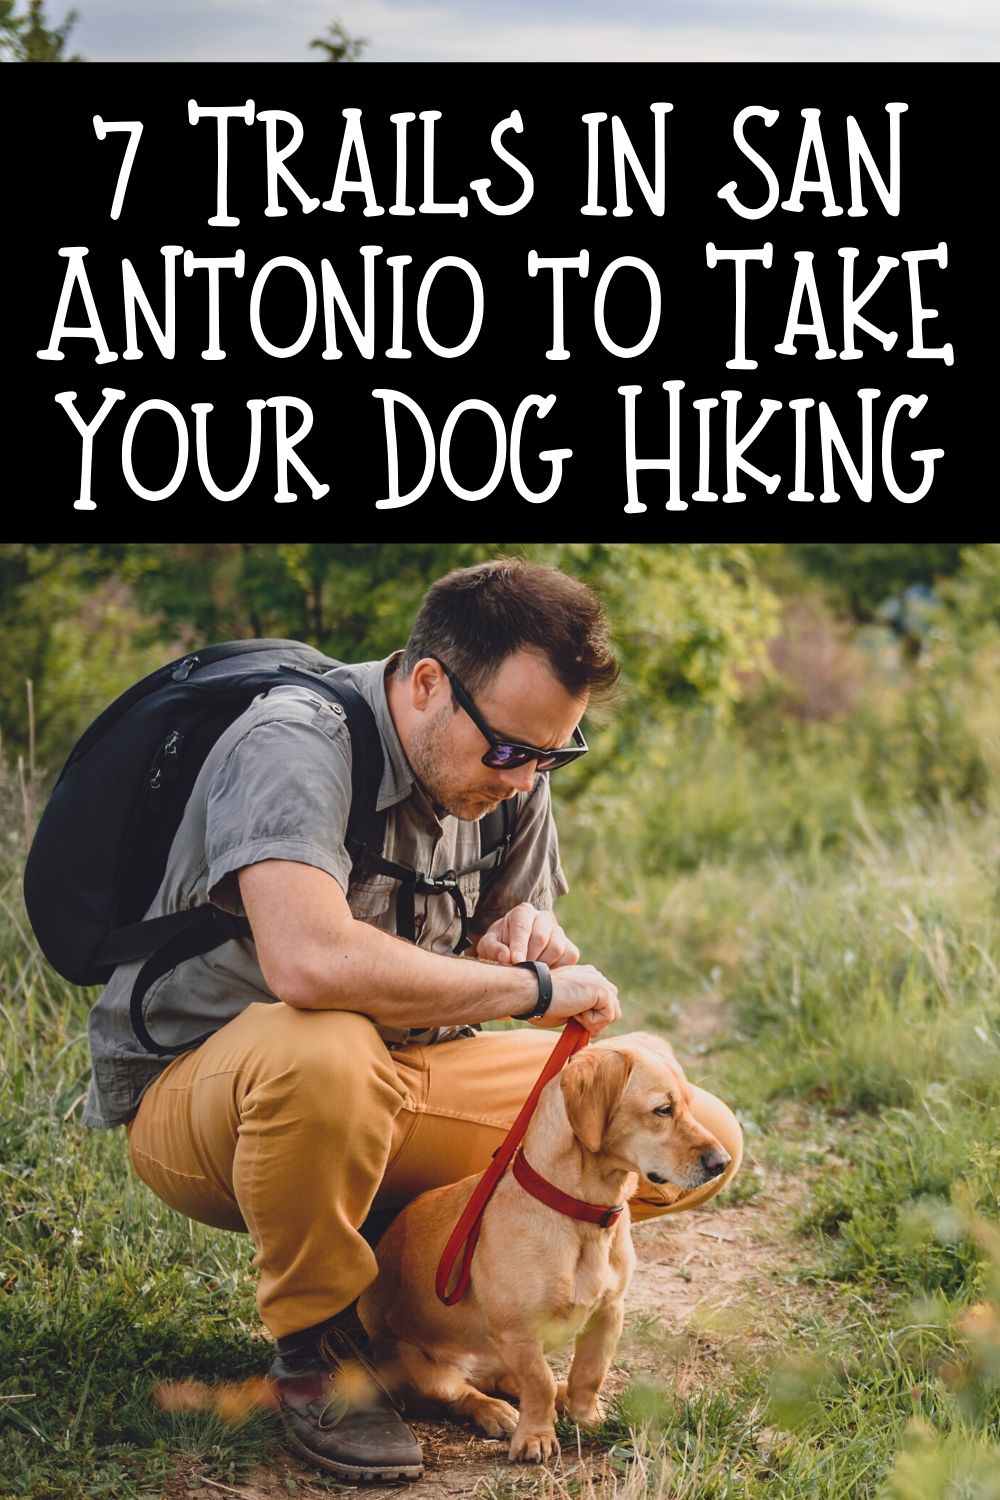 Have you done any San Antonio hiking? If not, now is the time to start. Here are some San Antonio hiking trails that you can visit with your dog!